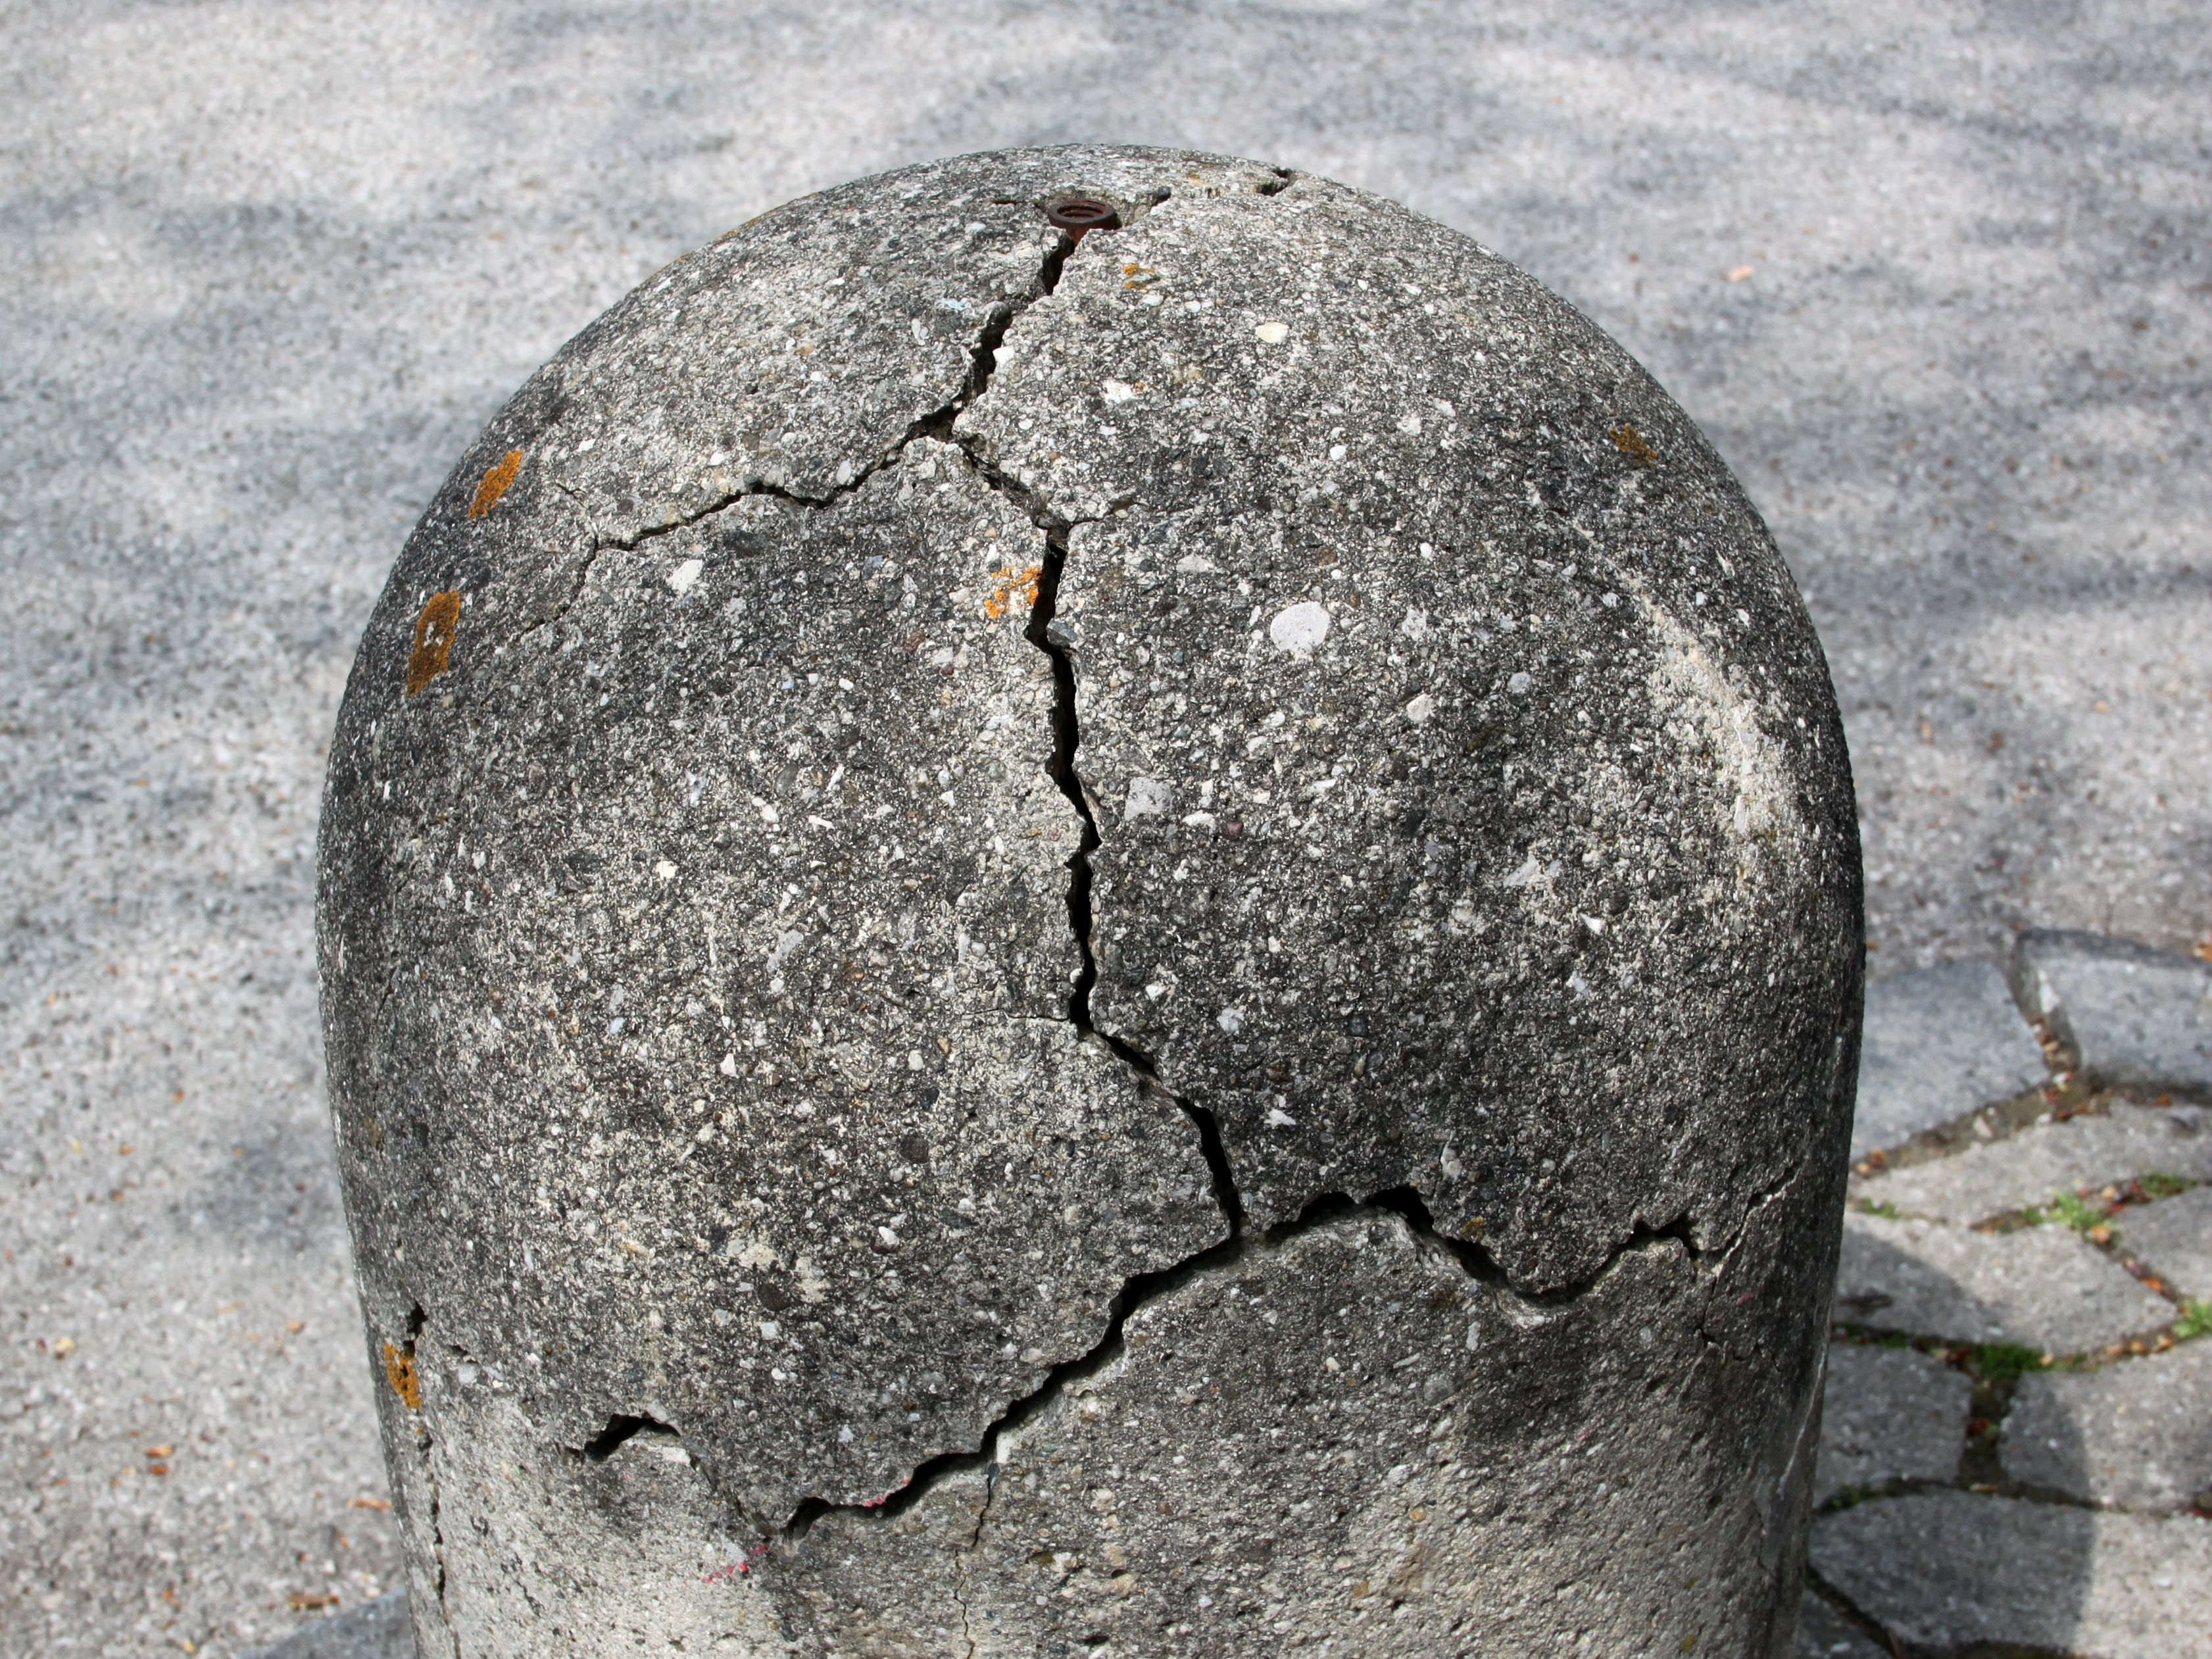 File:Mechanical weathering of a cement bollard - 20110501 ...